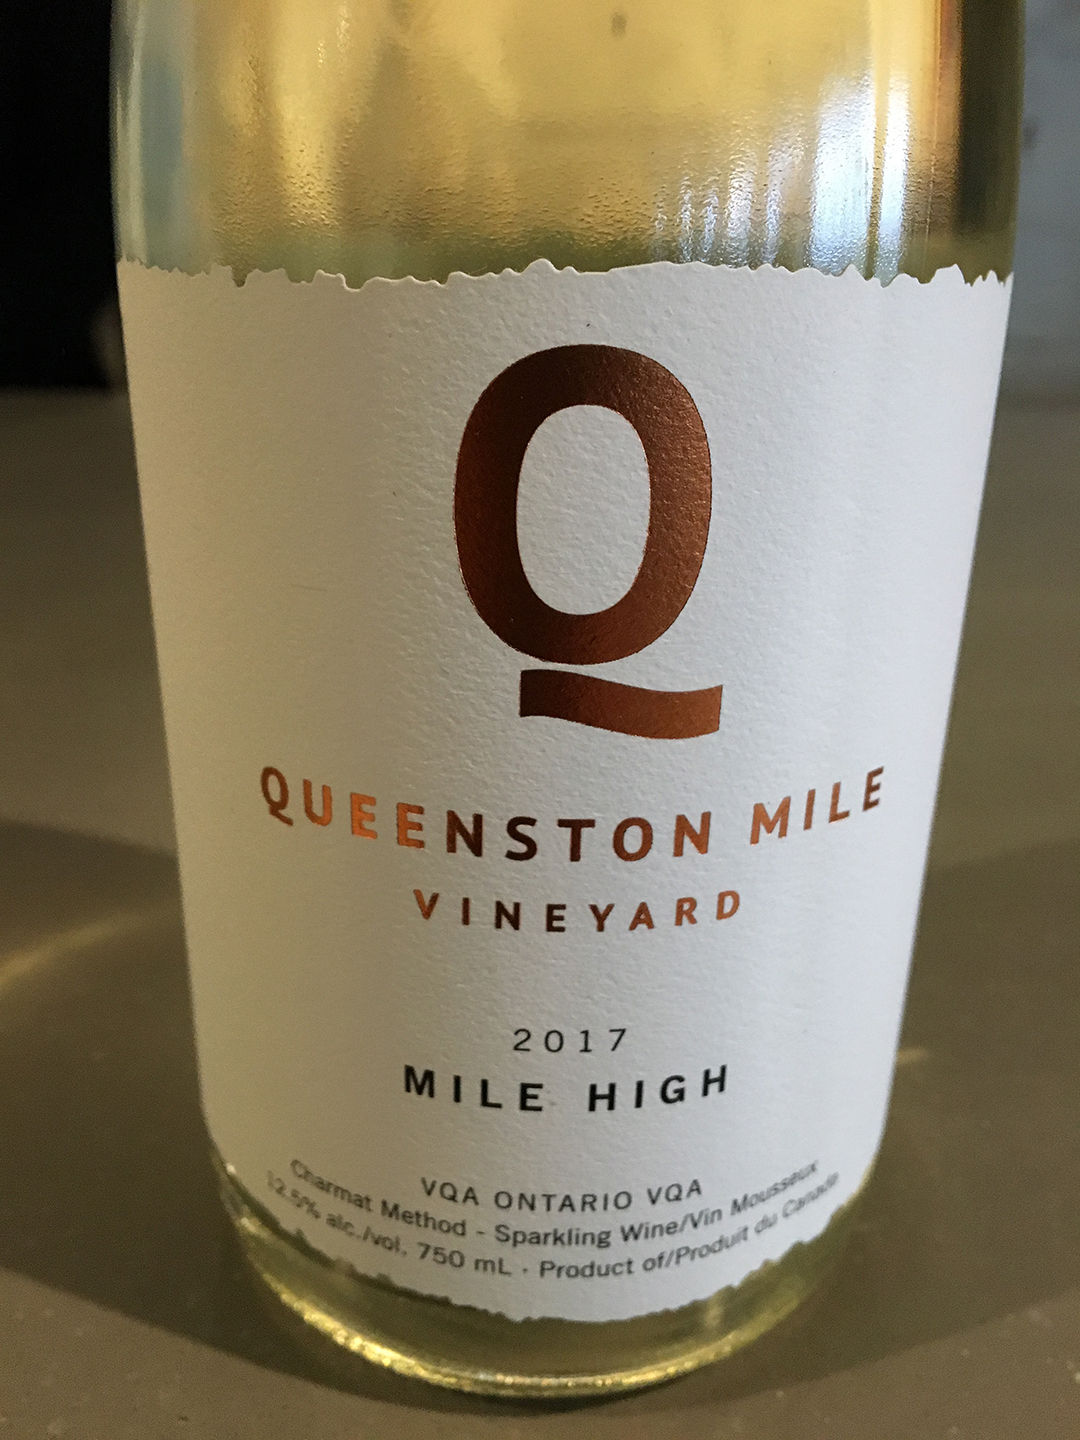 Queenston Mile Vineyard Mile High 2017